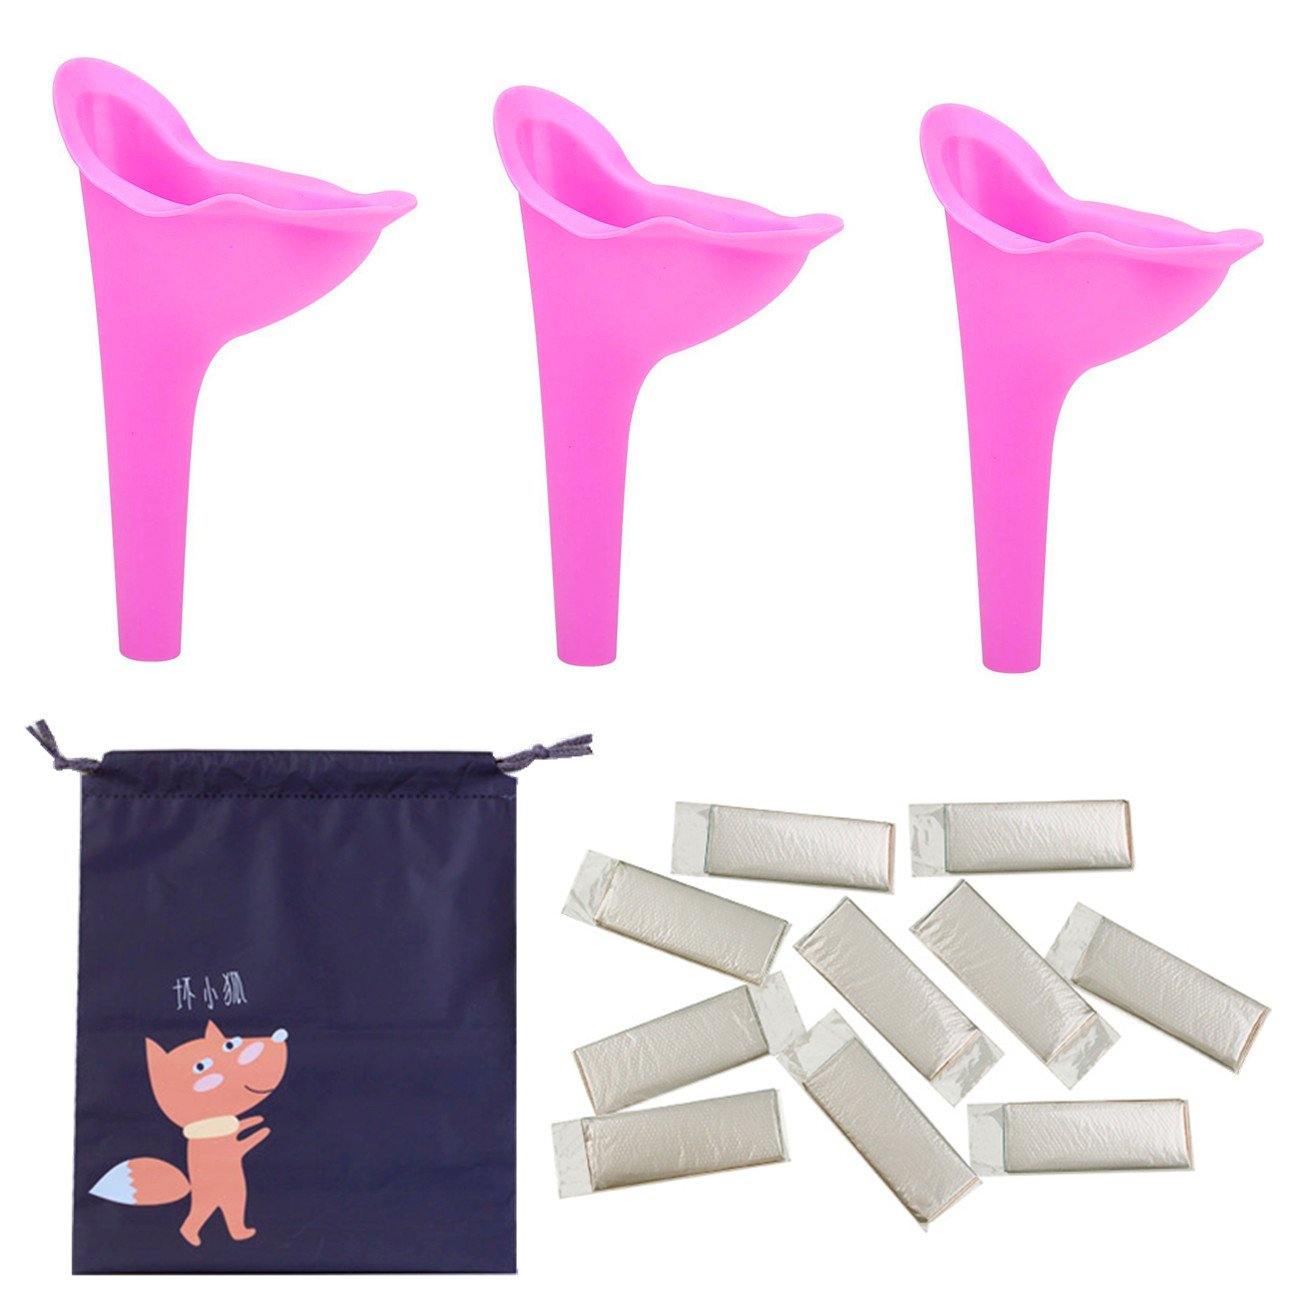 Portable Outdoor Camping Cycling Hiking Female Urinal Urine Funnel Travel Loo